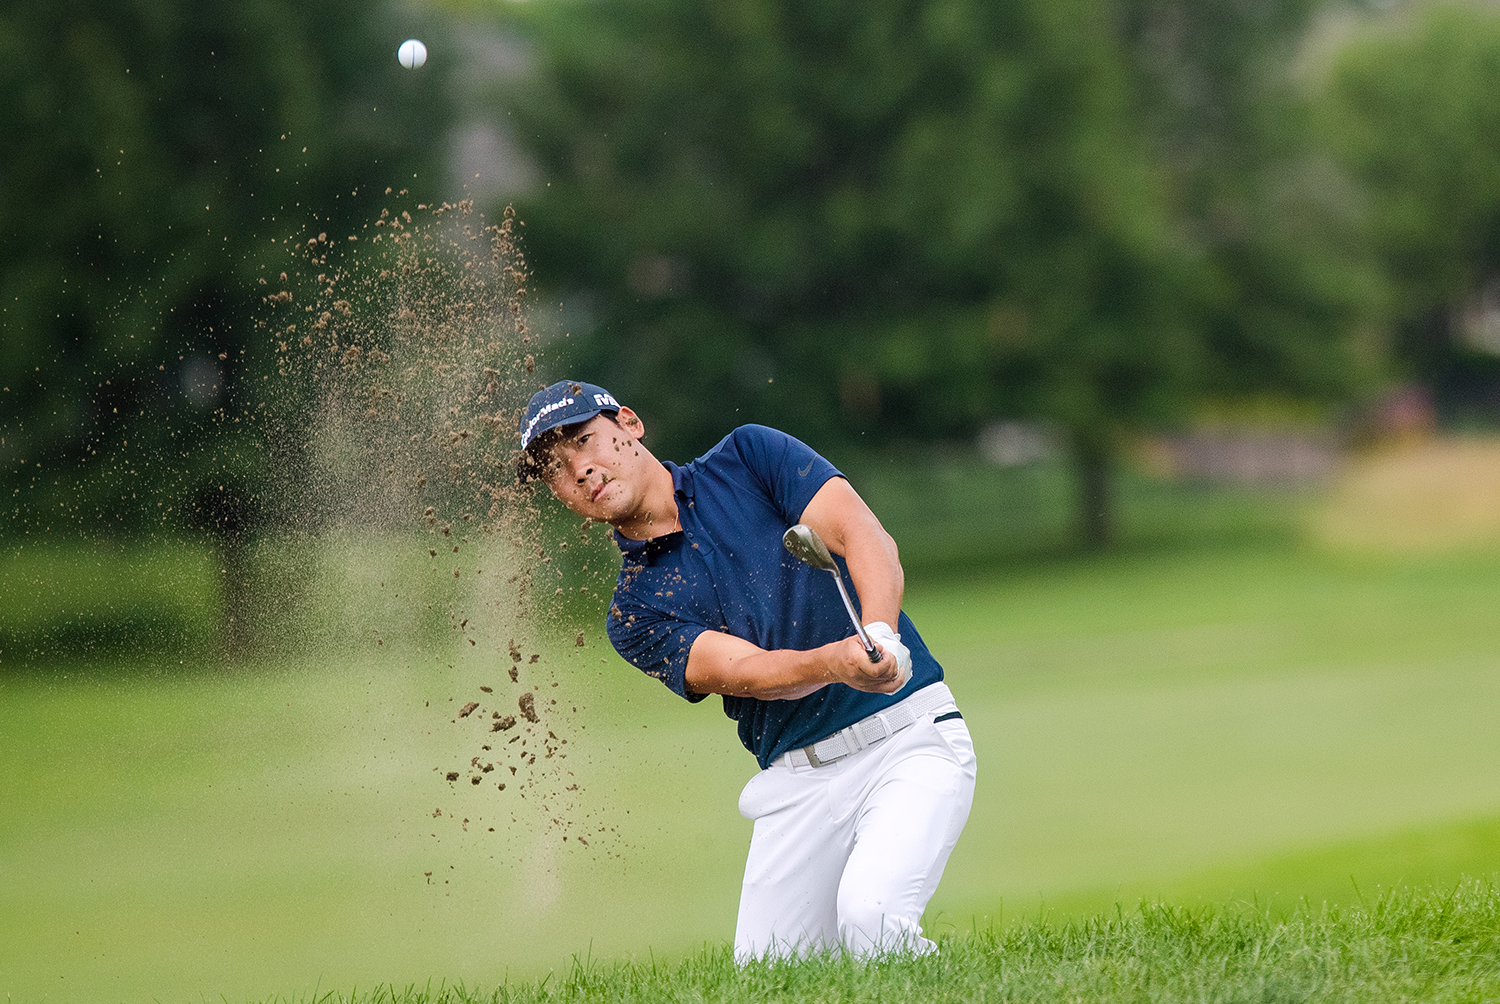 Xinjun Zhang hits out of a bunker on the 16th hole during the fourth round of Web.com Tour's Lincoln Land Championship presented by LRS Sunday, June 16, 2019. Zhang picked up his second consecutive birdie on the hole, putting him at 15 under and forcing a playoff that he won with Dylan Wu. [Ted Schurter/The State Journal-Register]